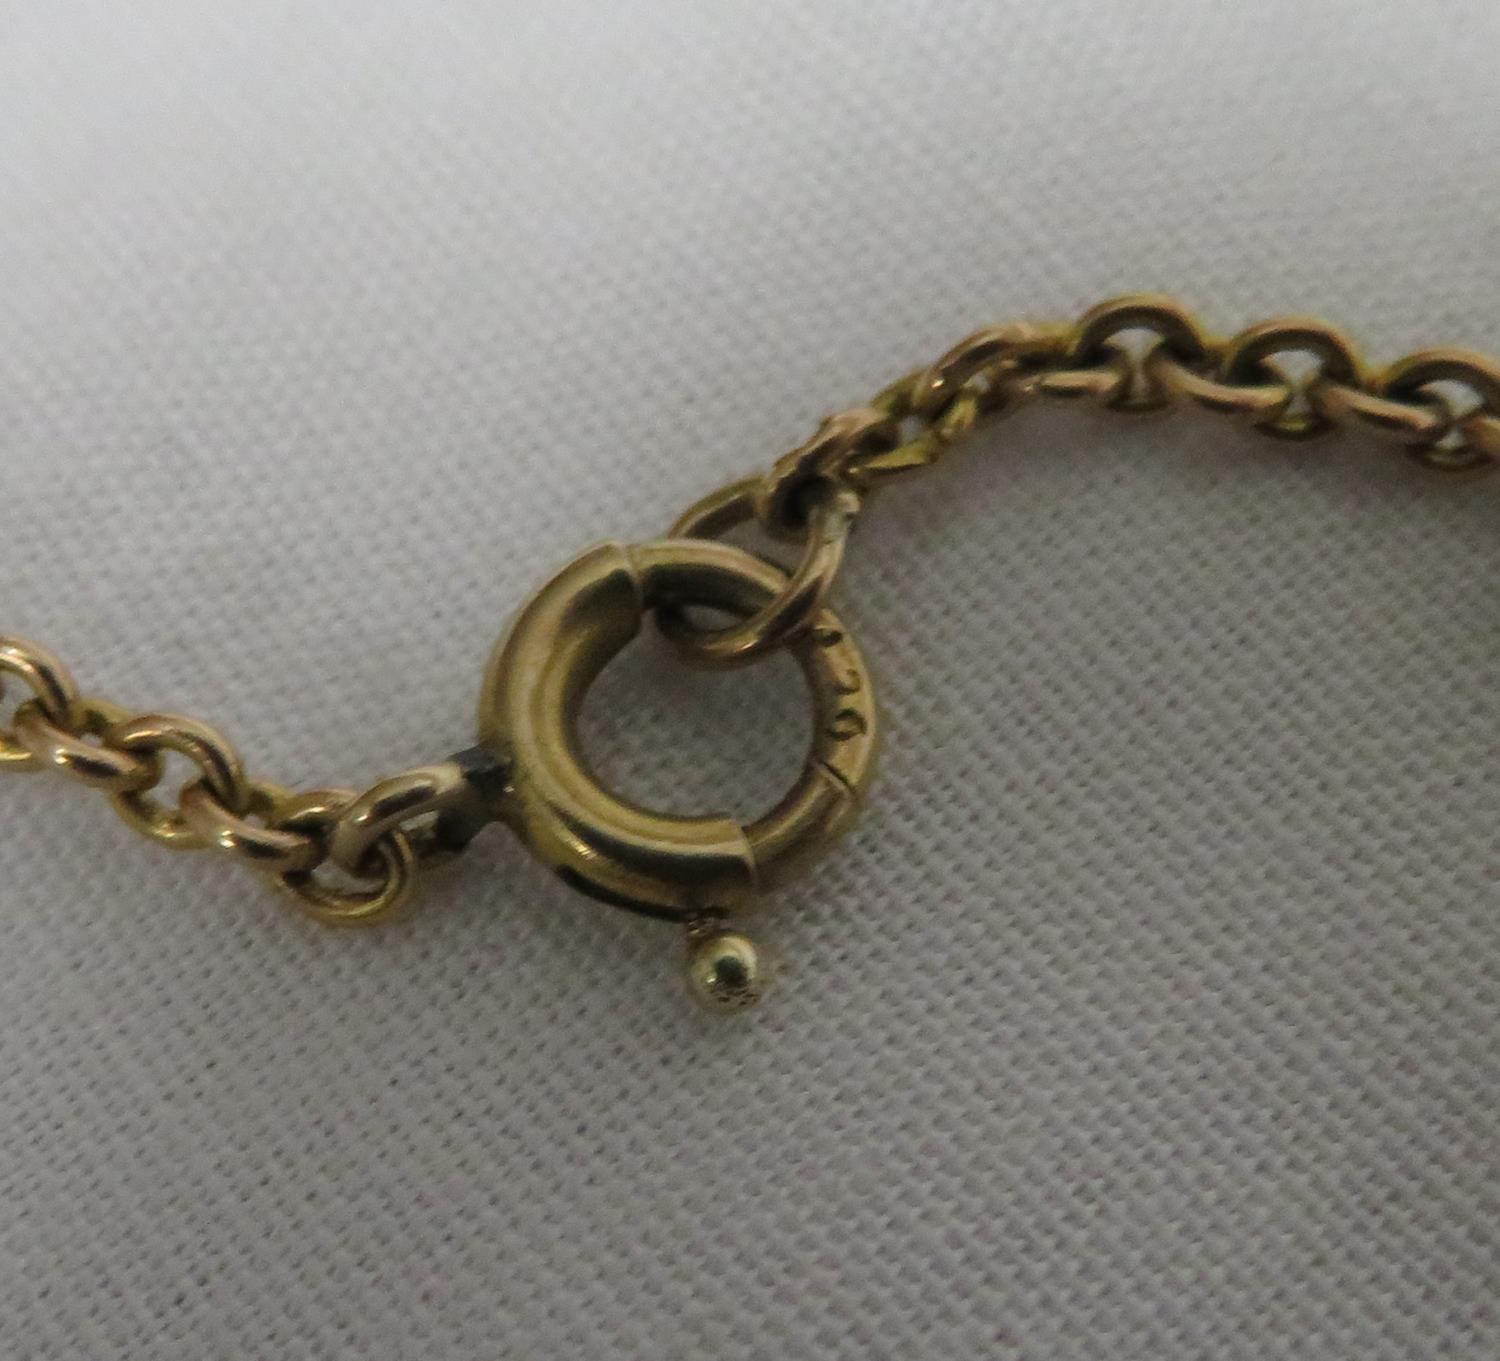 Lot 26 - 1887 half sovereign on chain - total weight 8.2 grams